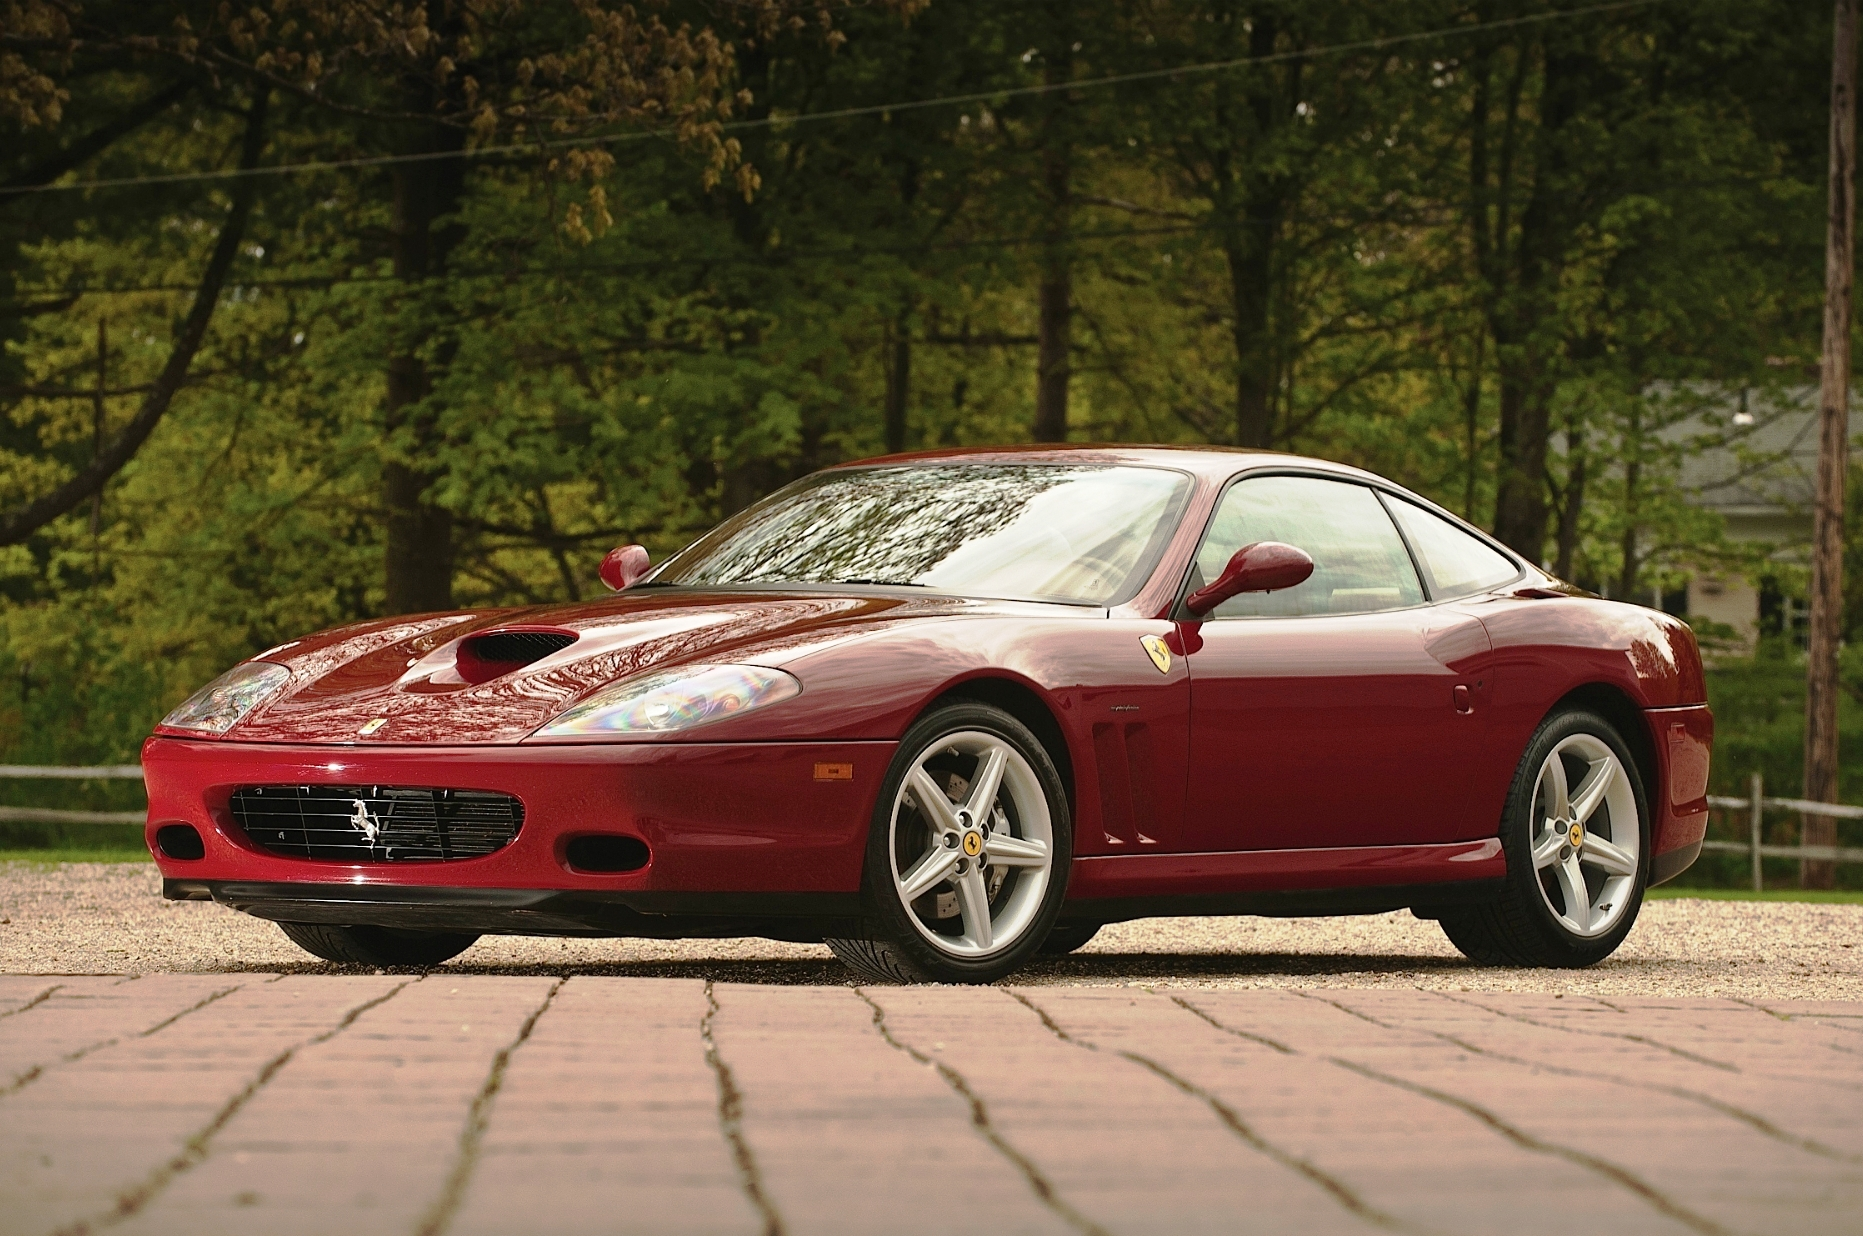 2017 Ferrari 575M Maranello photo - 1